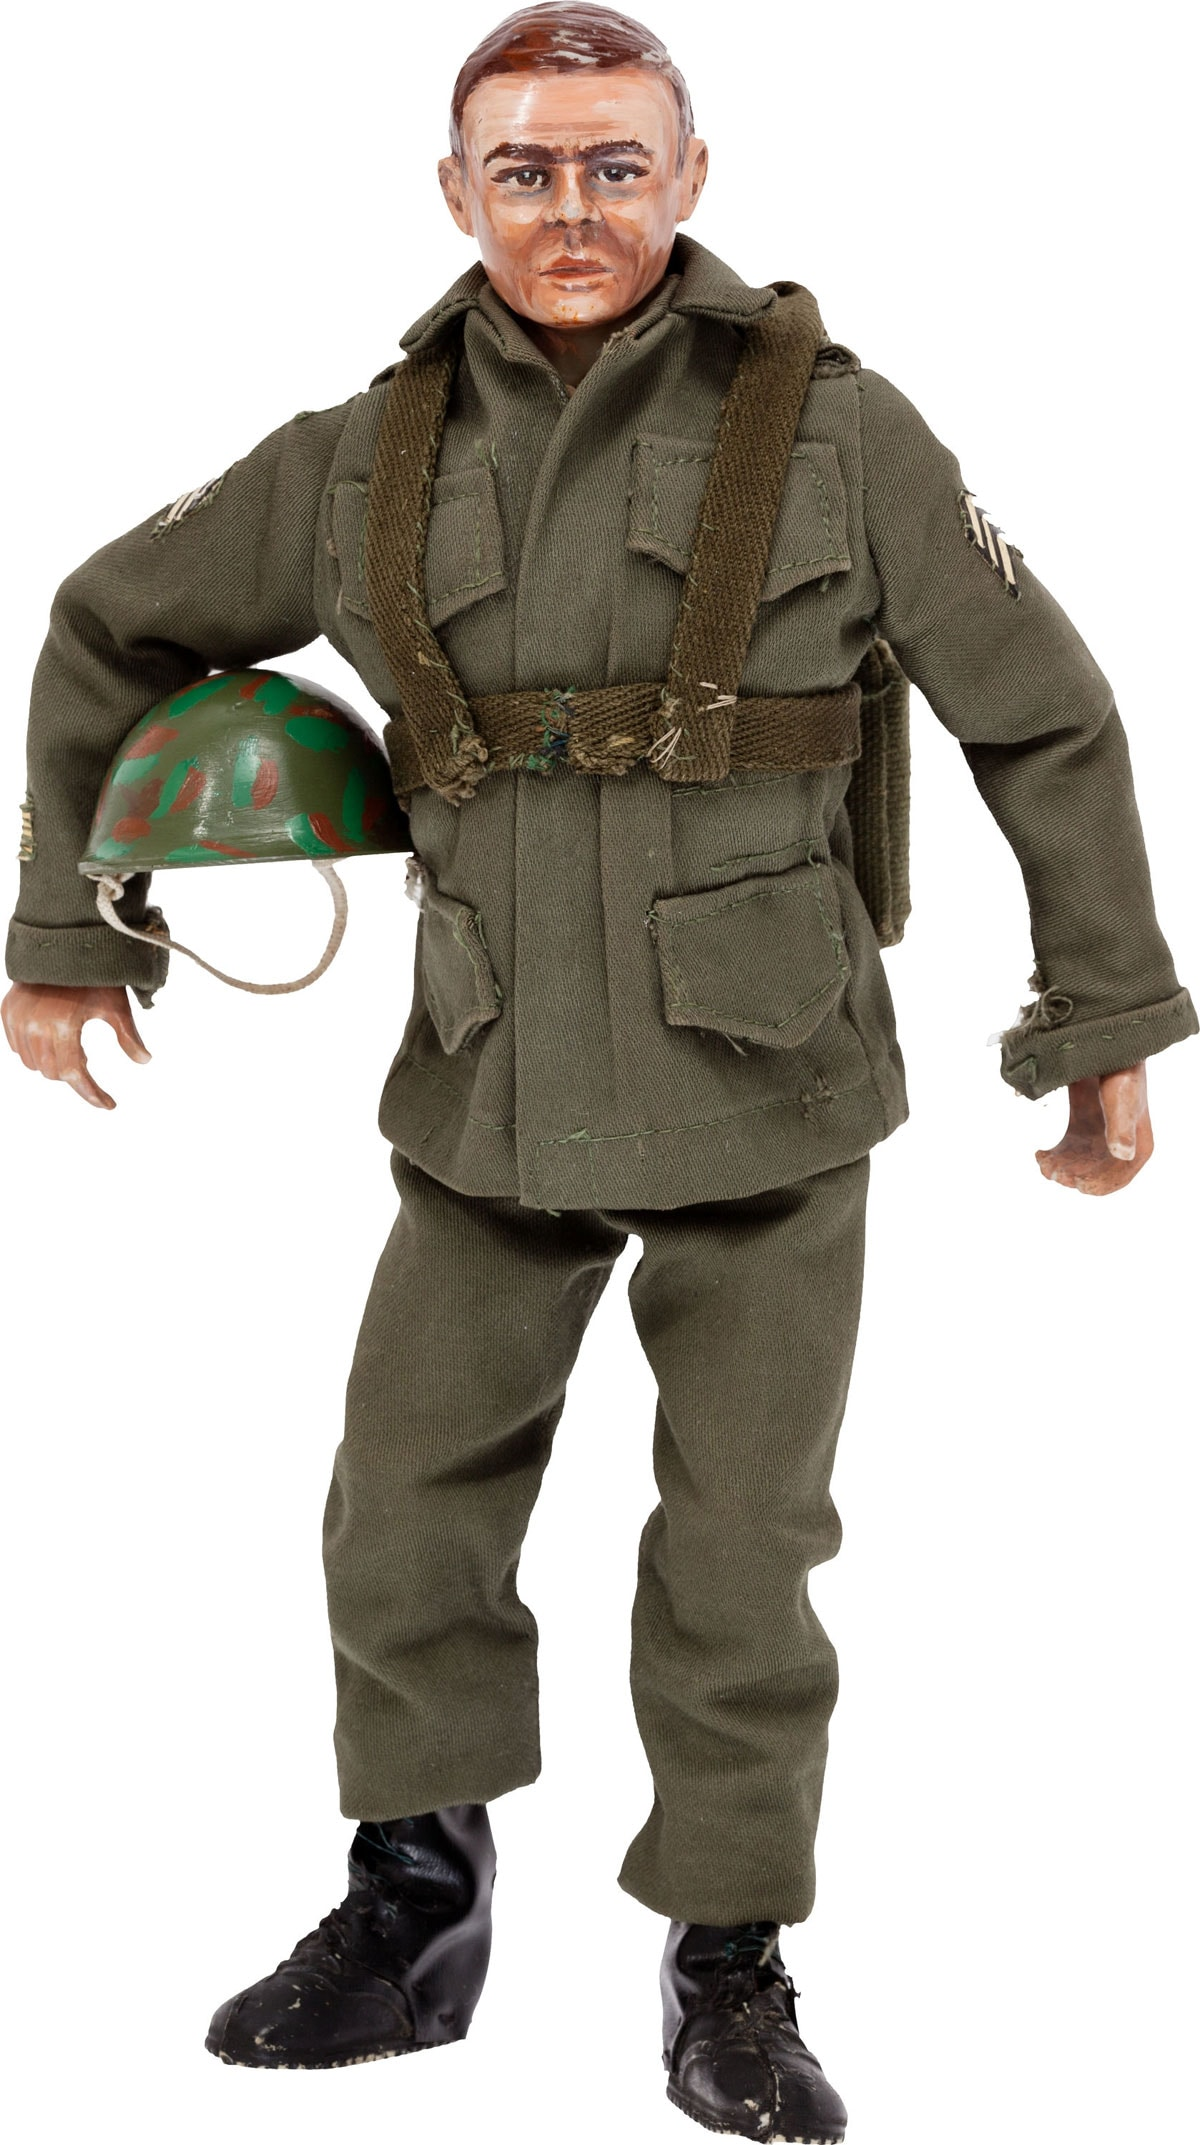 Don Levine's first iteration of G.I. Joe, hand made in 1964